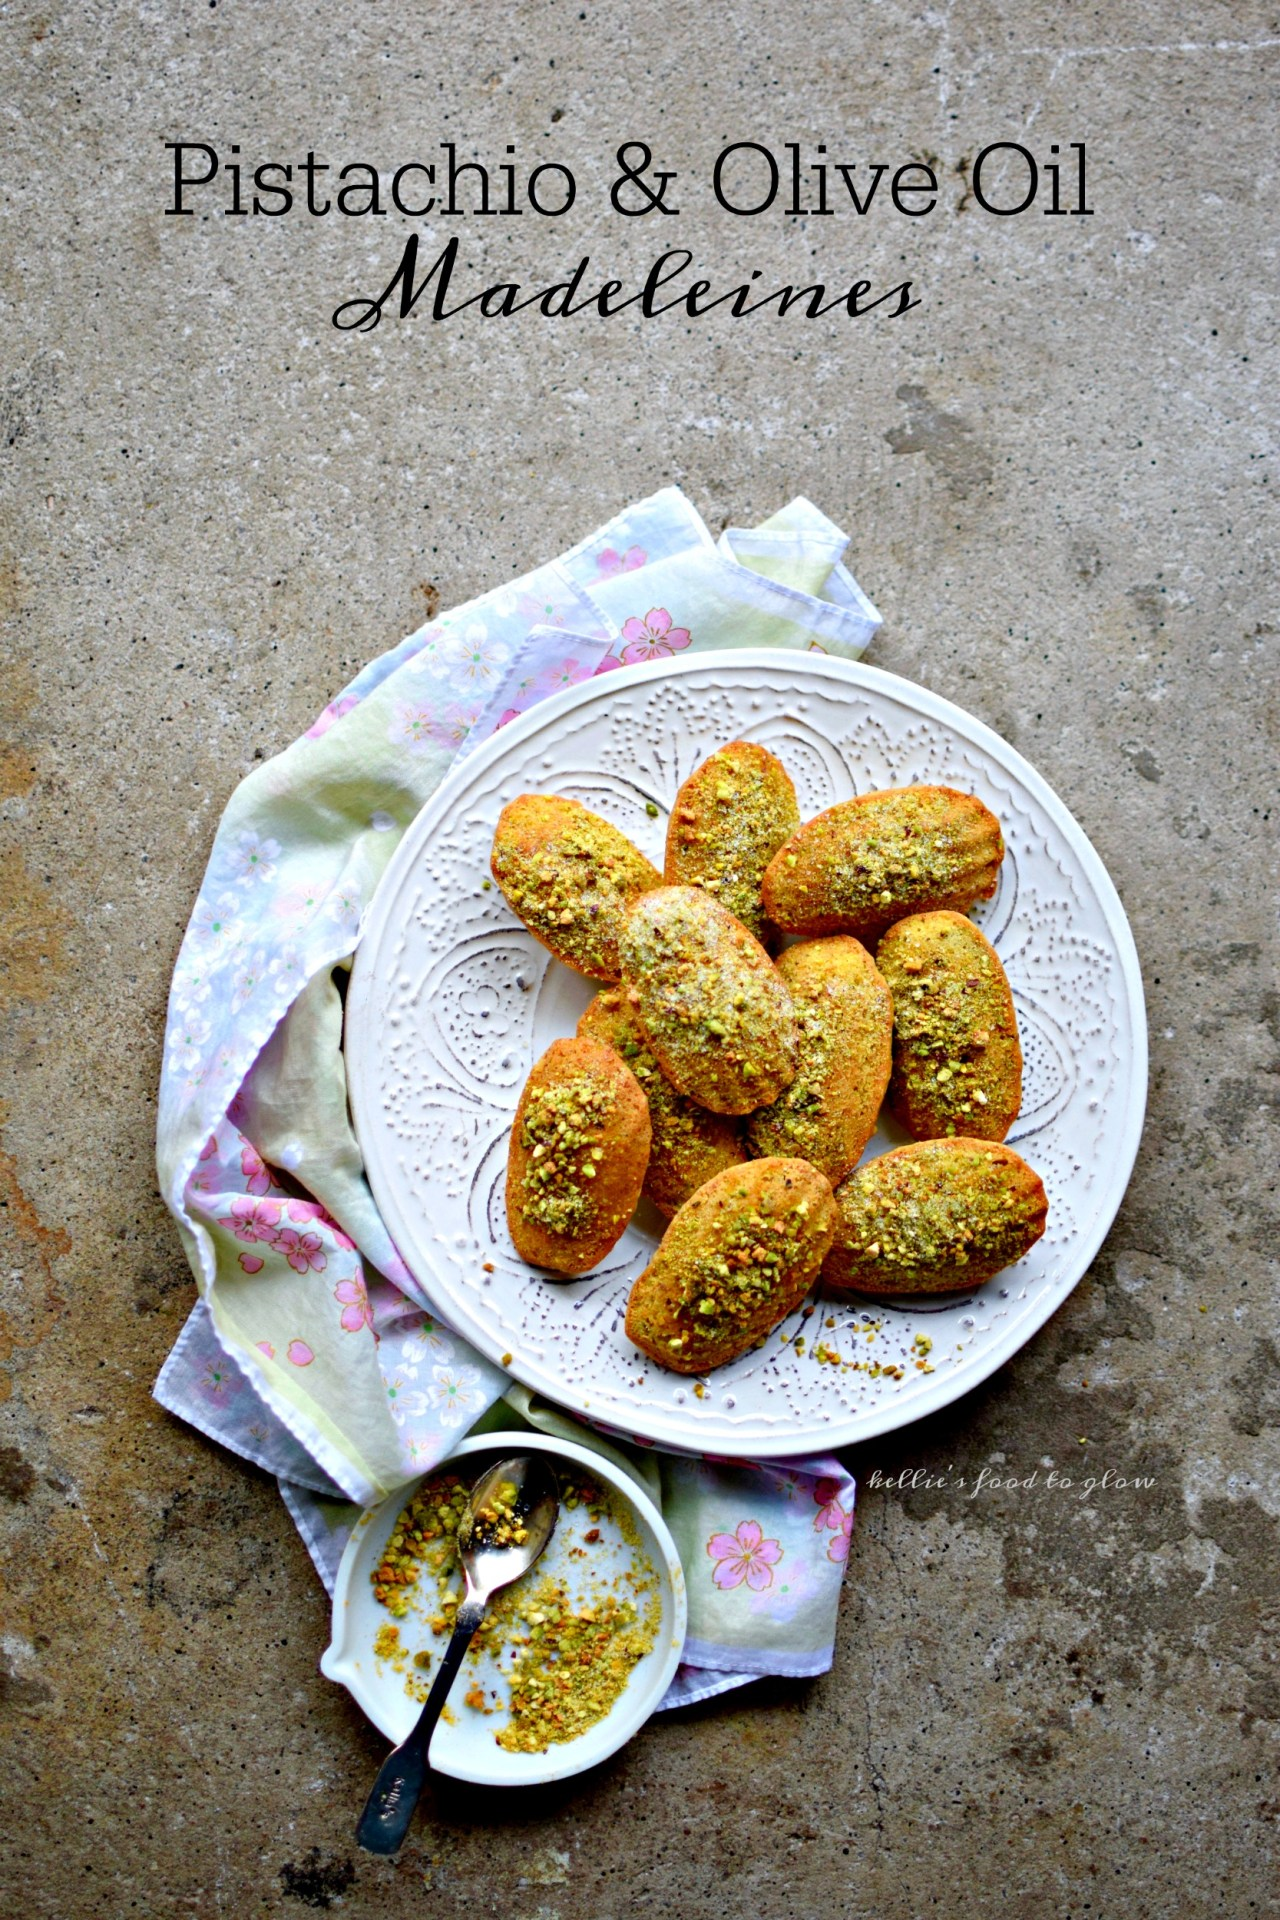 Perhaps one of the most literary of foodstuffs, madeleines are surprisingly easy to make. These tiny scallop-shaped cakes are given a 21st century makeover with olive oil and pistachios - and a touch of yuzu if you have it. Dip into a steaming cup of tea and see what happens!